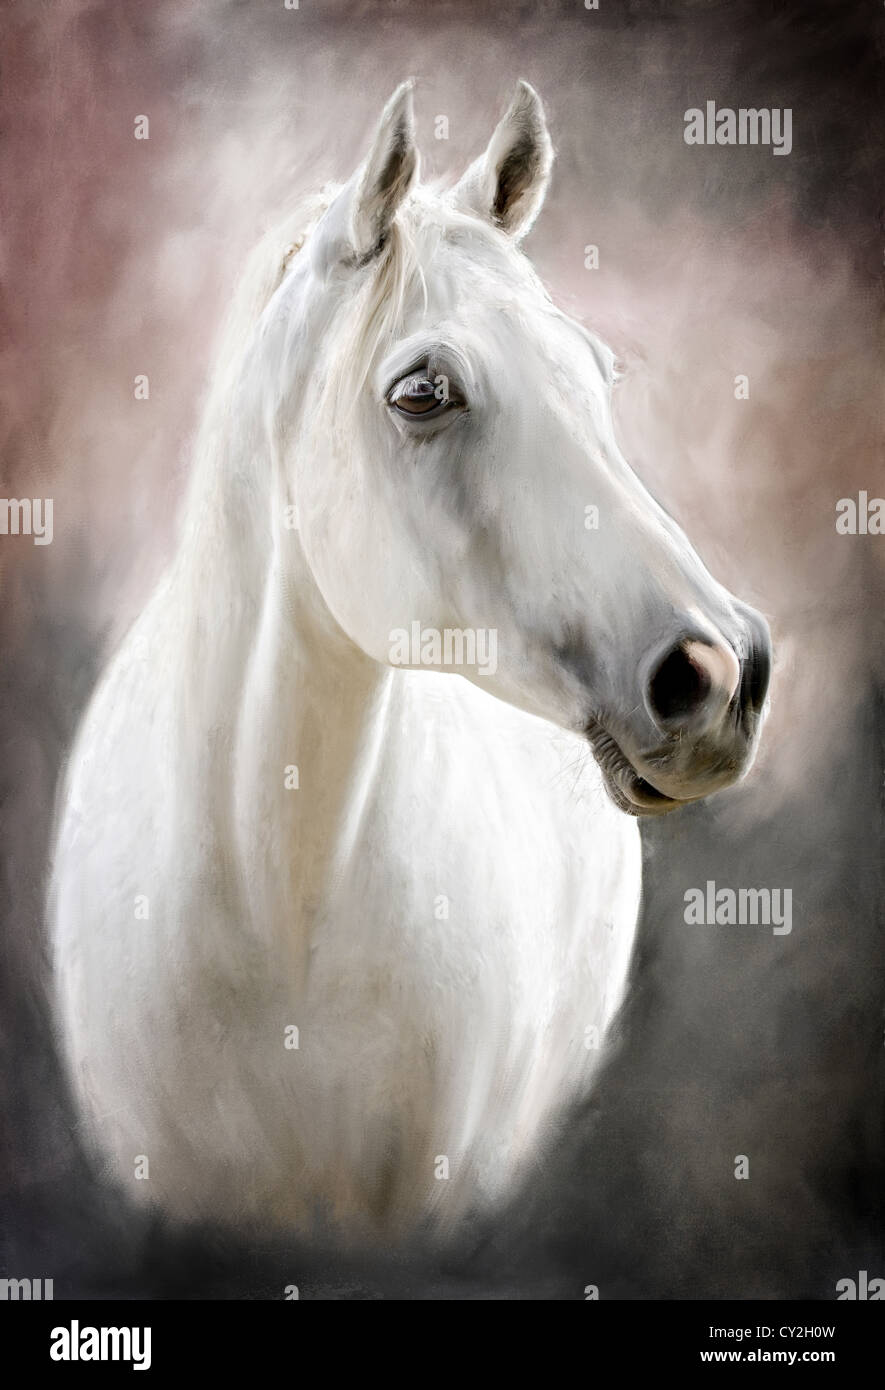 Horse Head Oil Painting High Resolution Stock Photography And Images Alamy